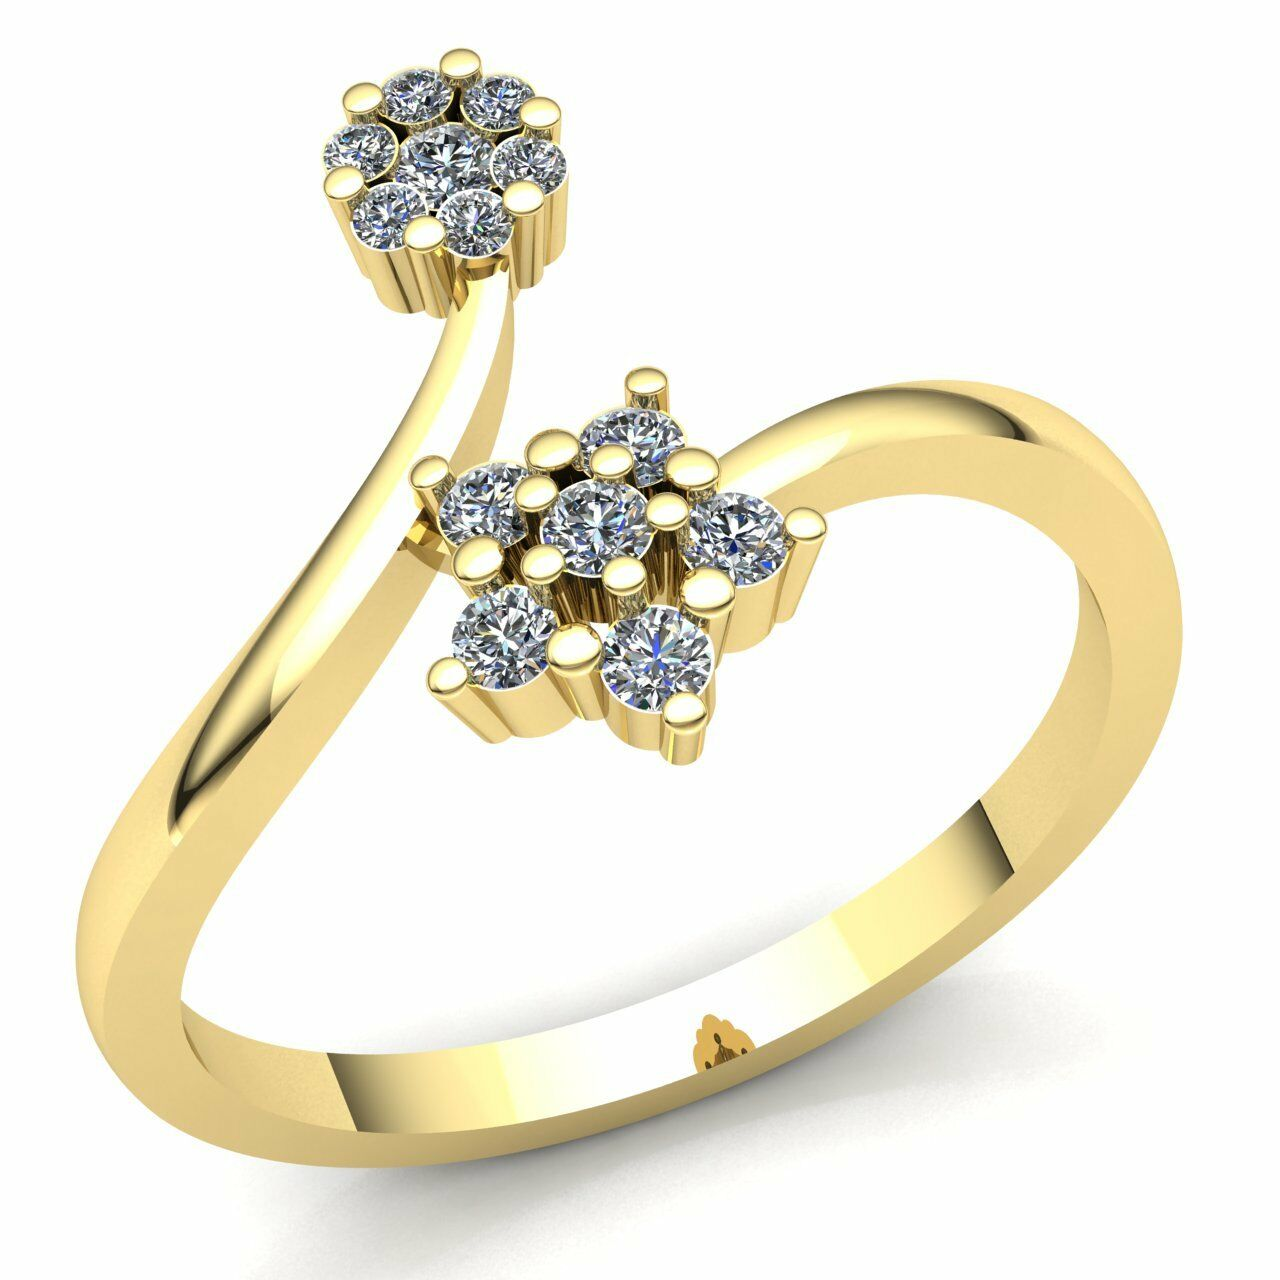 Genuine 1ct Round Cut Diamond Ladies Twisted Flower Engagement Ring 14K gold